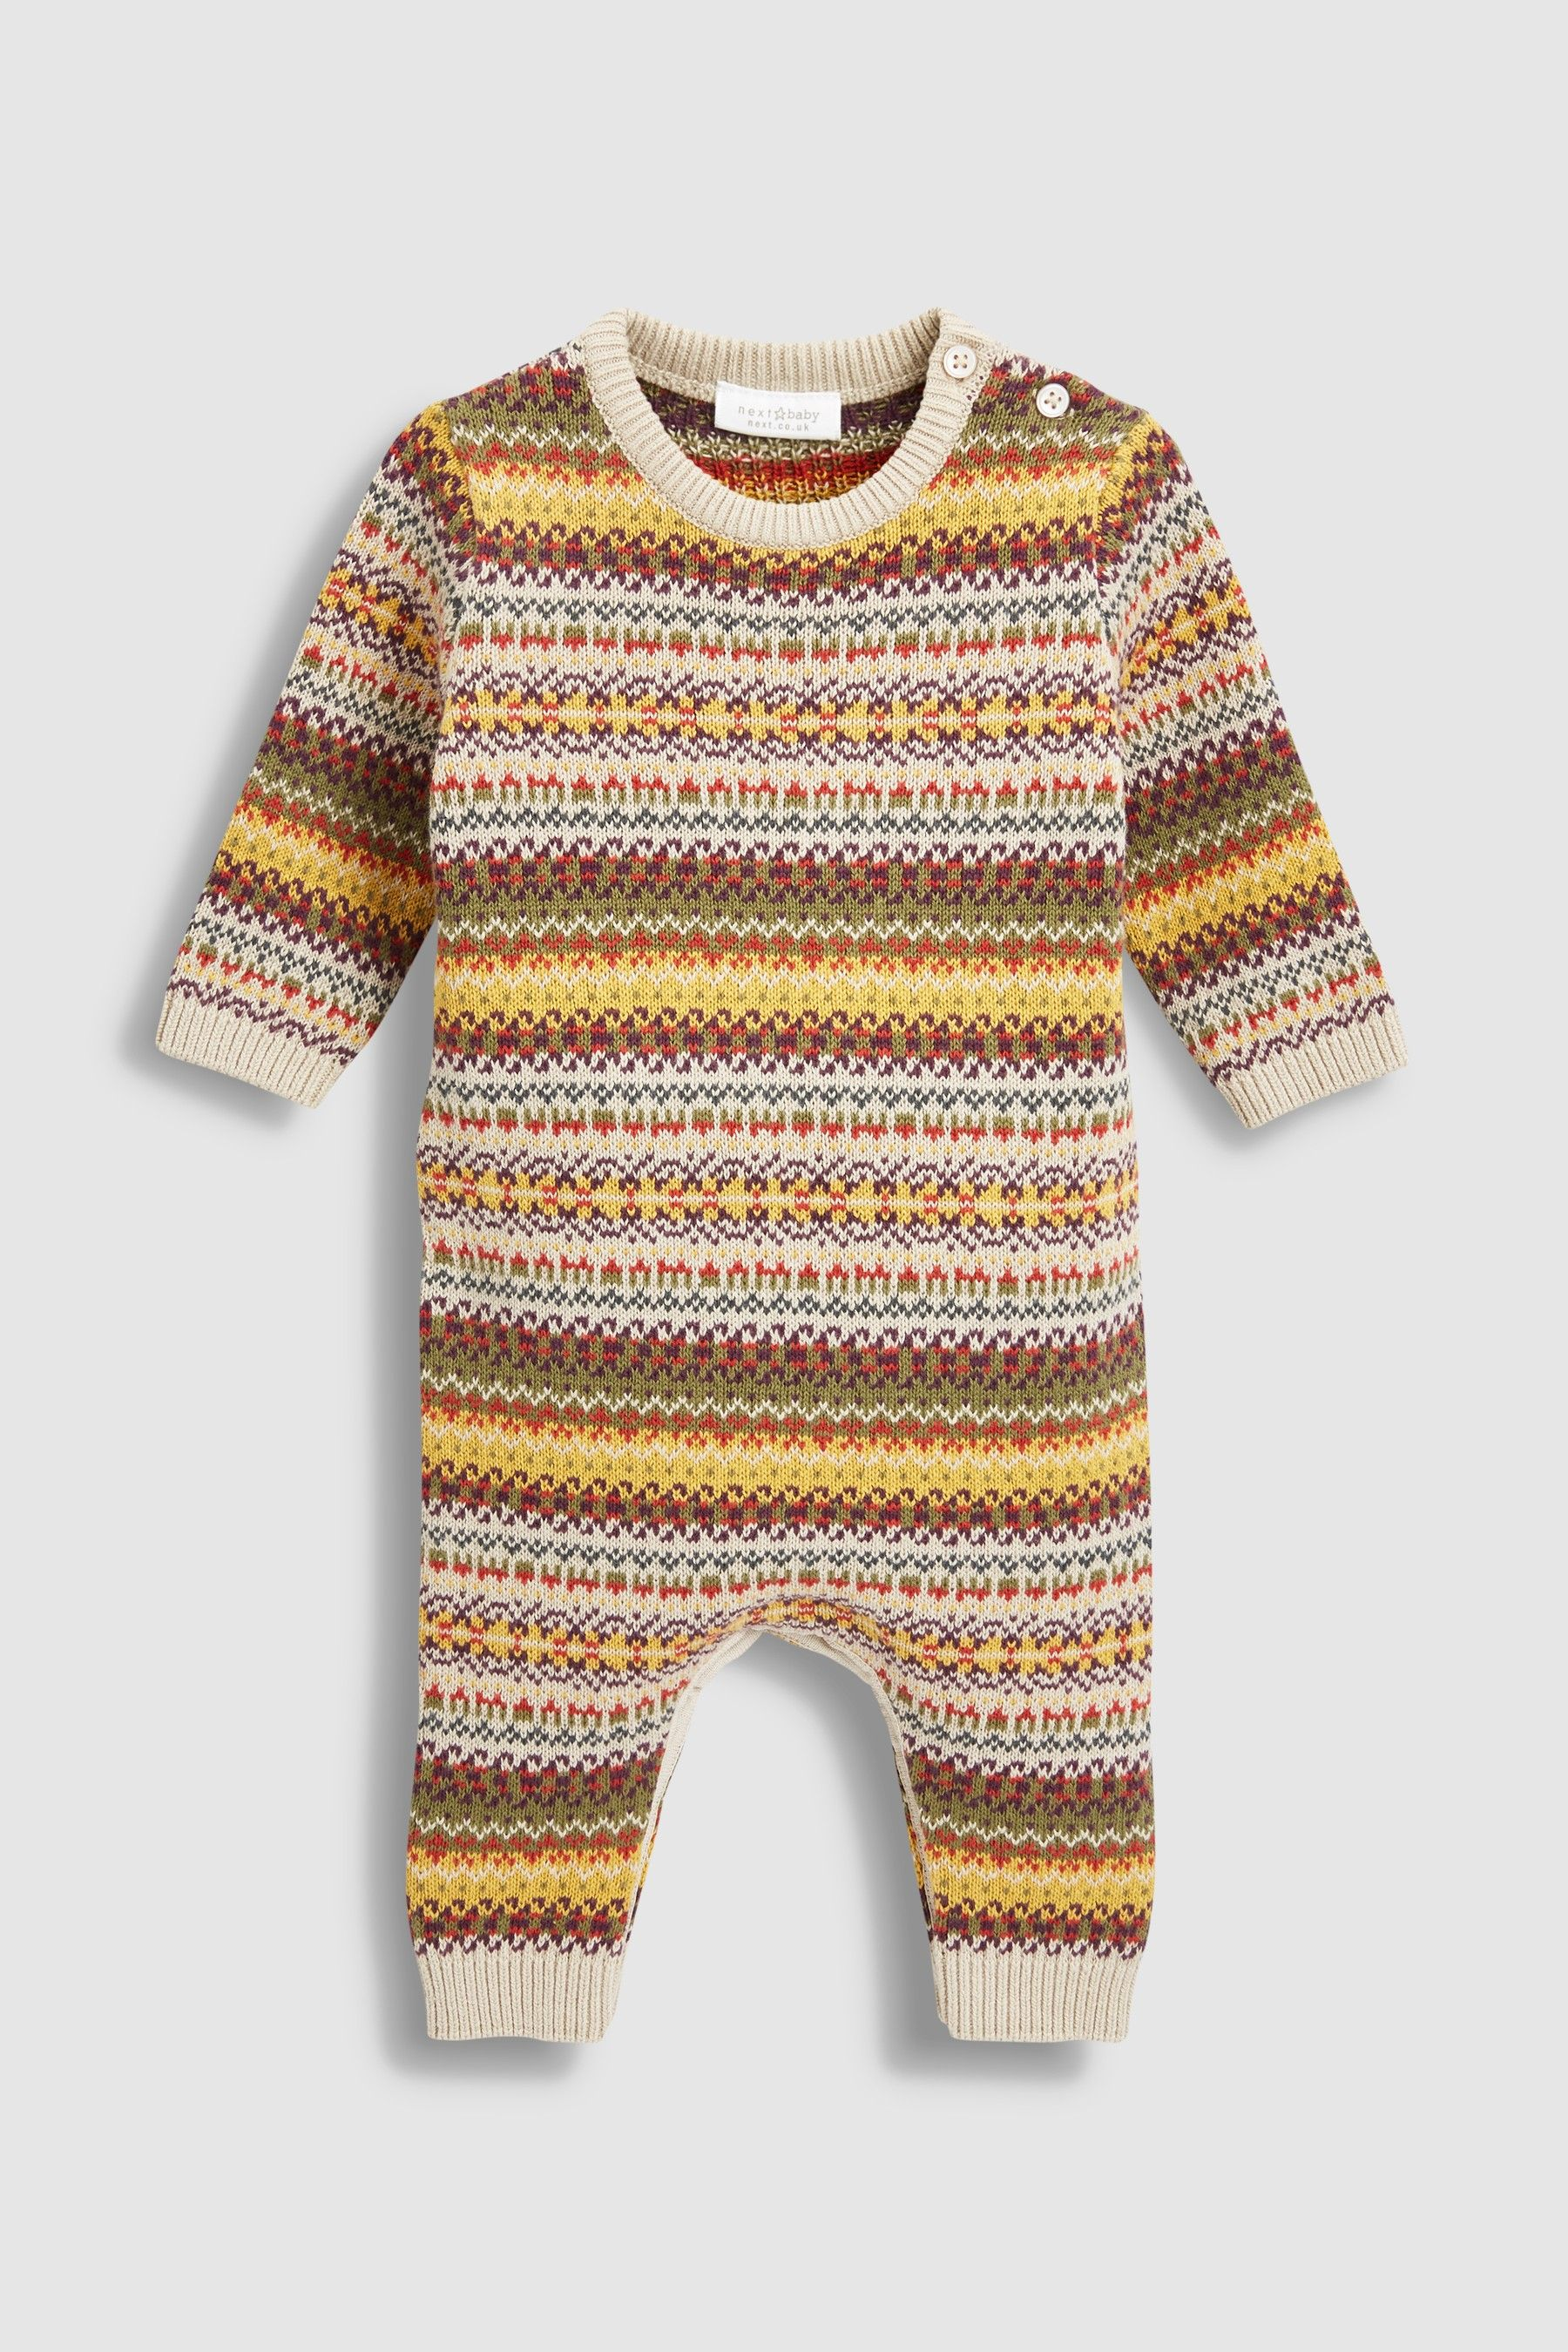 eb8dac2d1 Boys Next Multi Fairisle Pattern Knit Romper (0mths-2yrs) - Brown ...